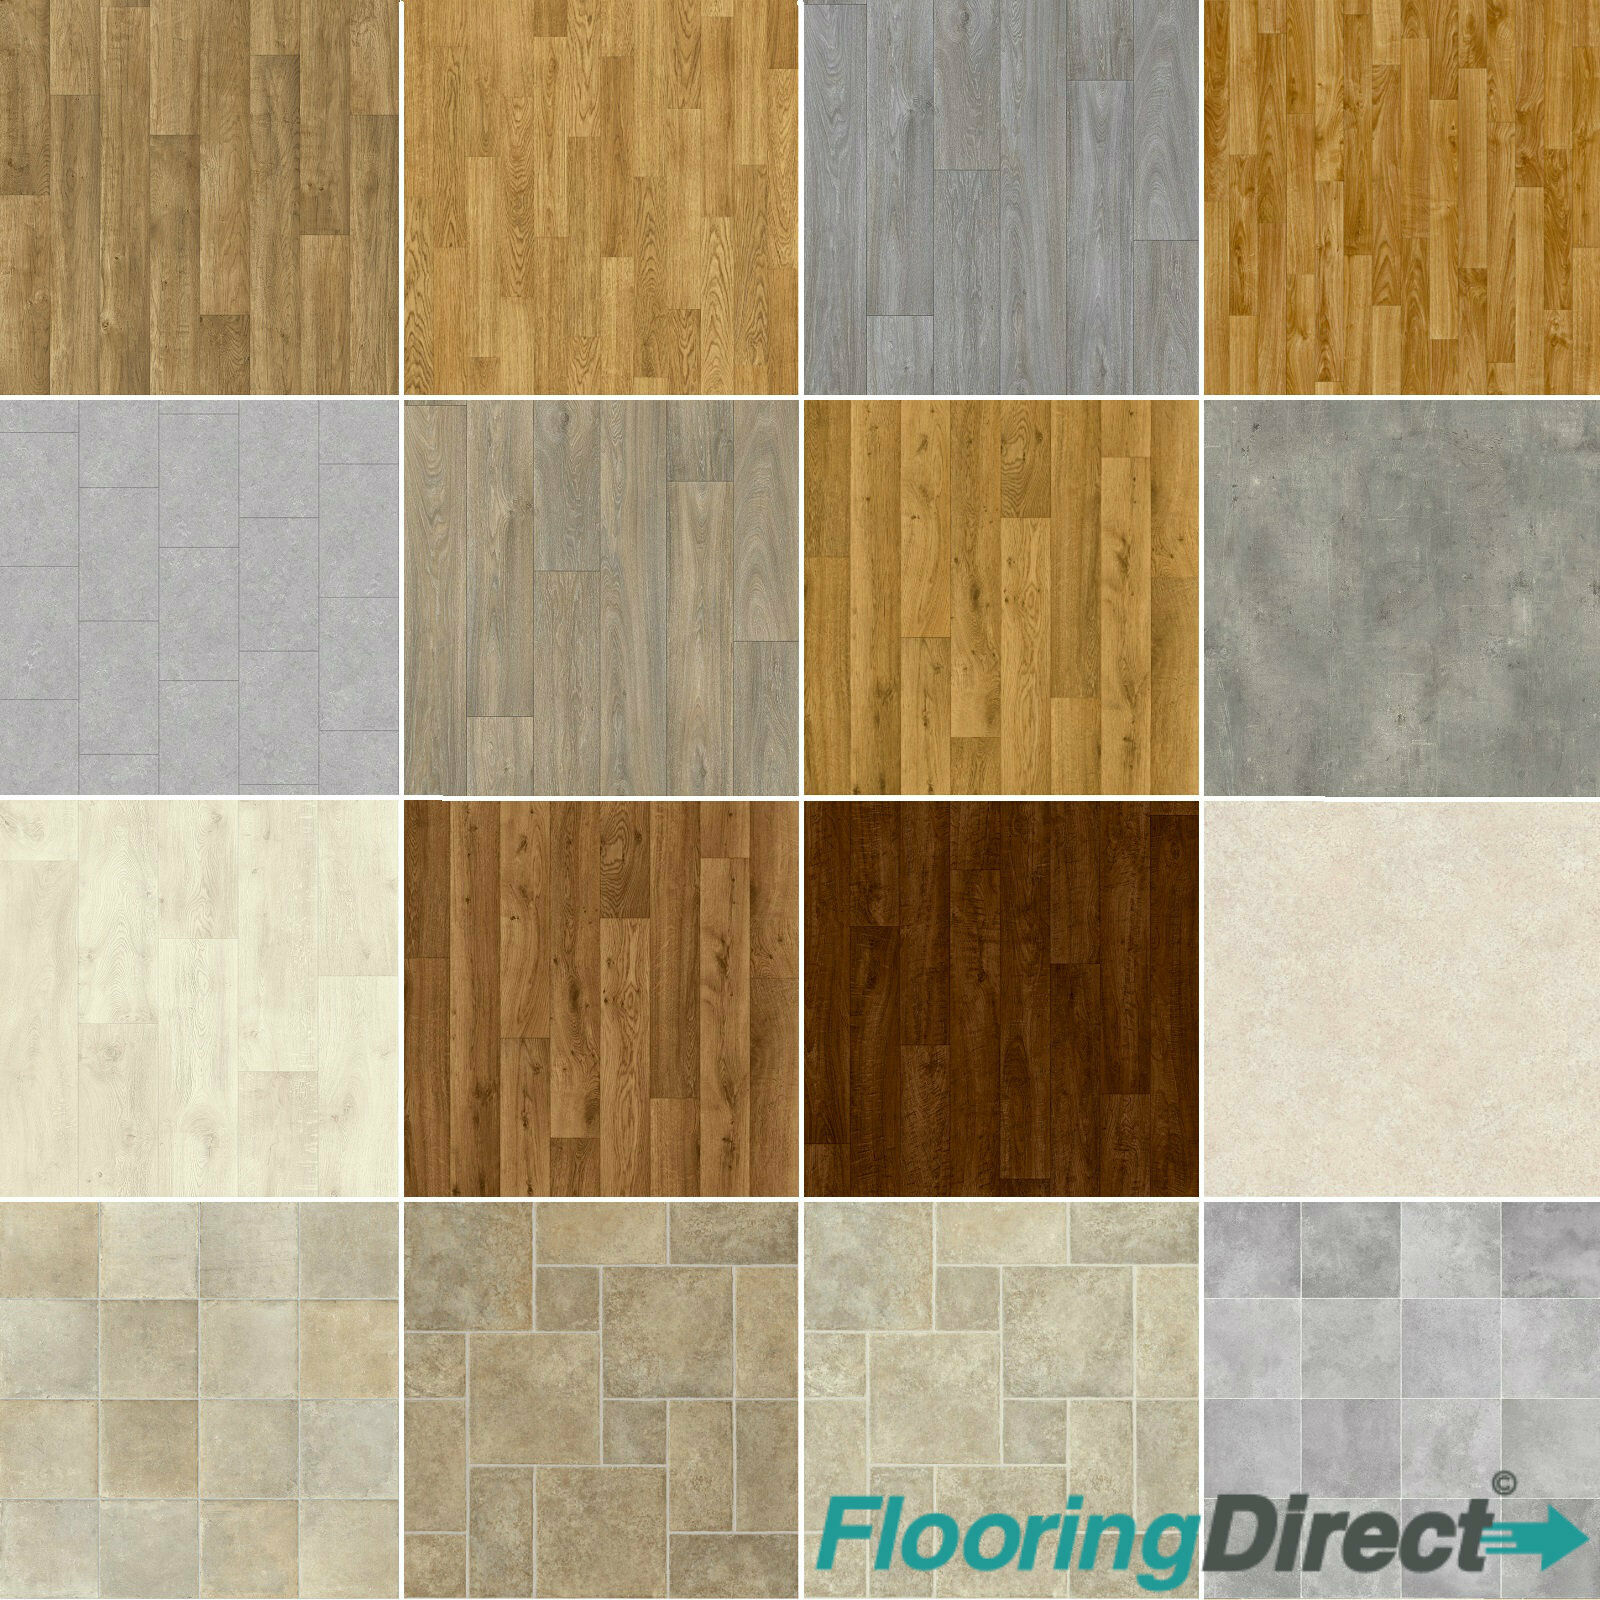 Wood Plank Vinyl Flooring Tile Effect Quality Lino Anti Slip Kitchen